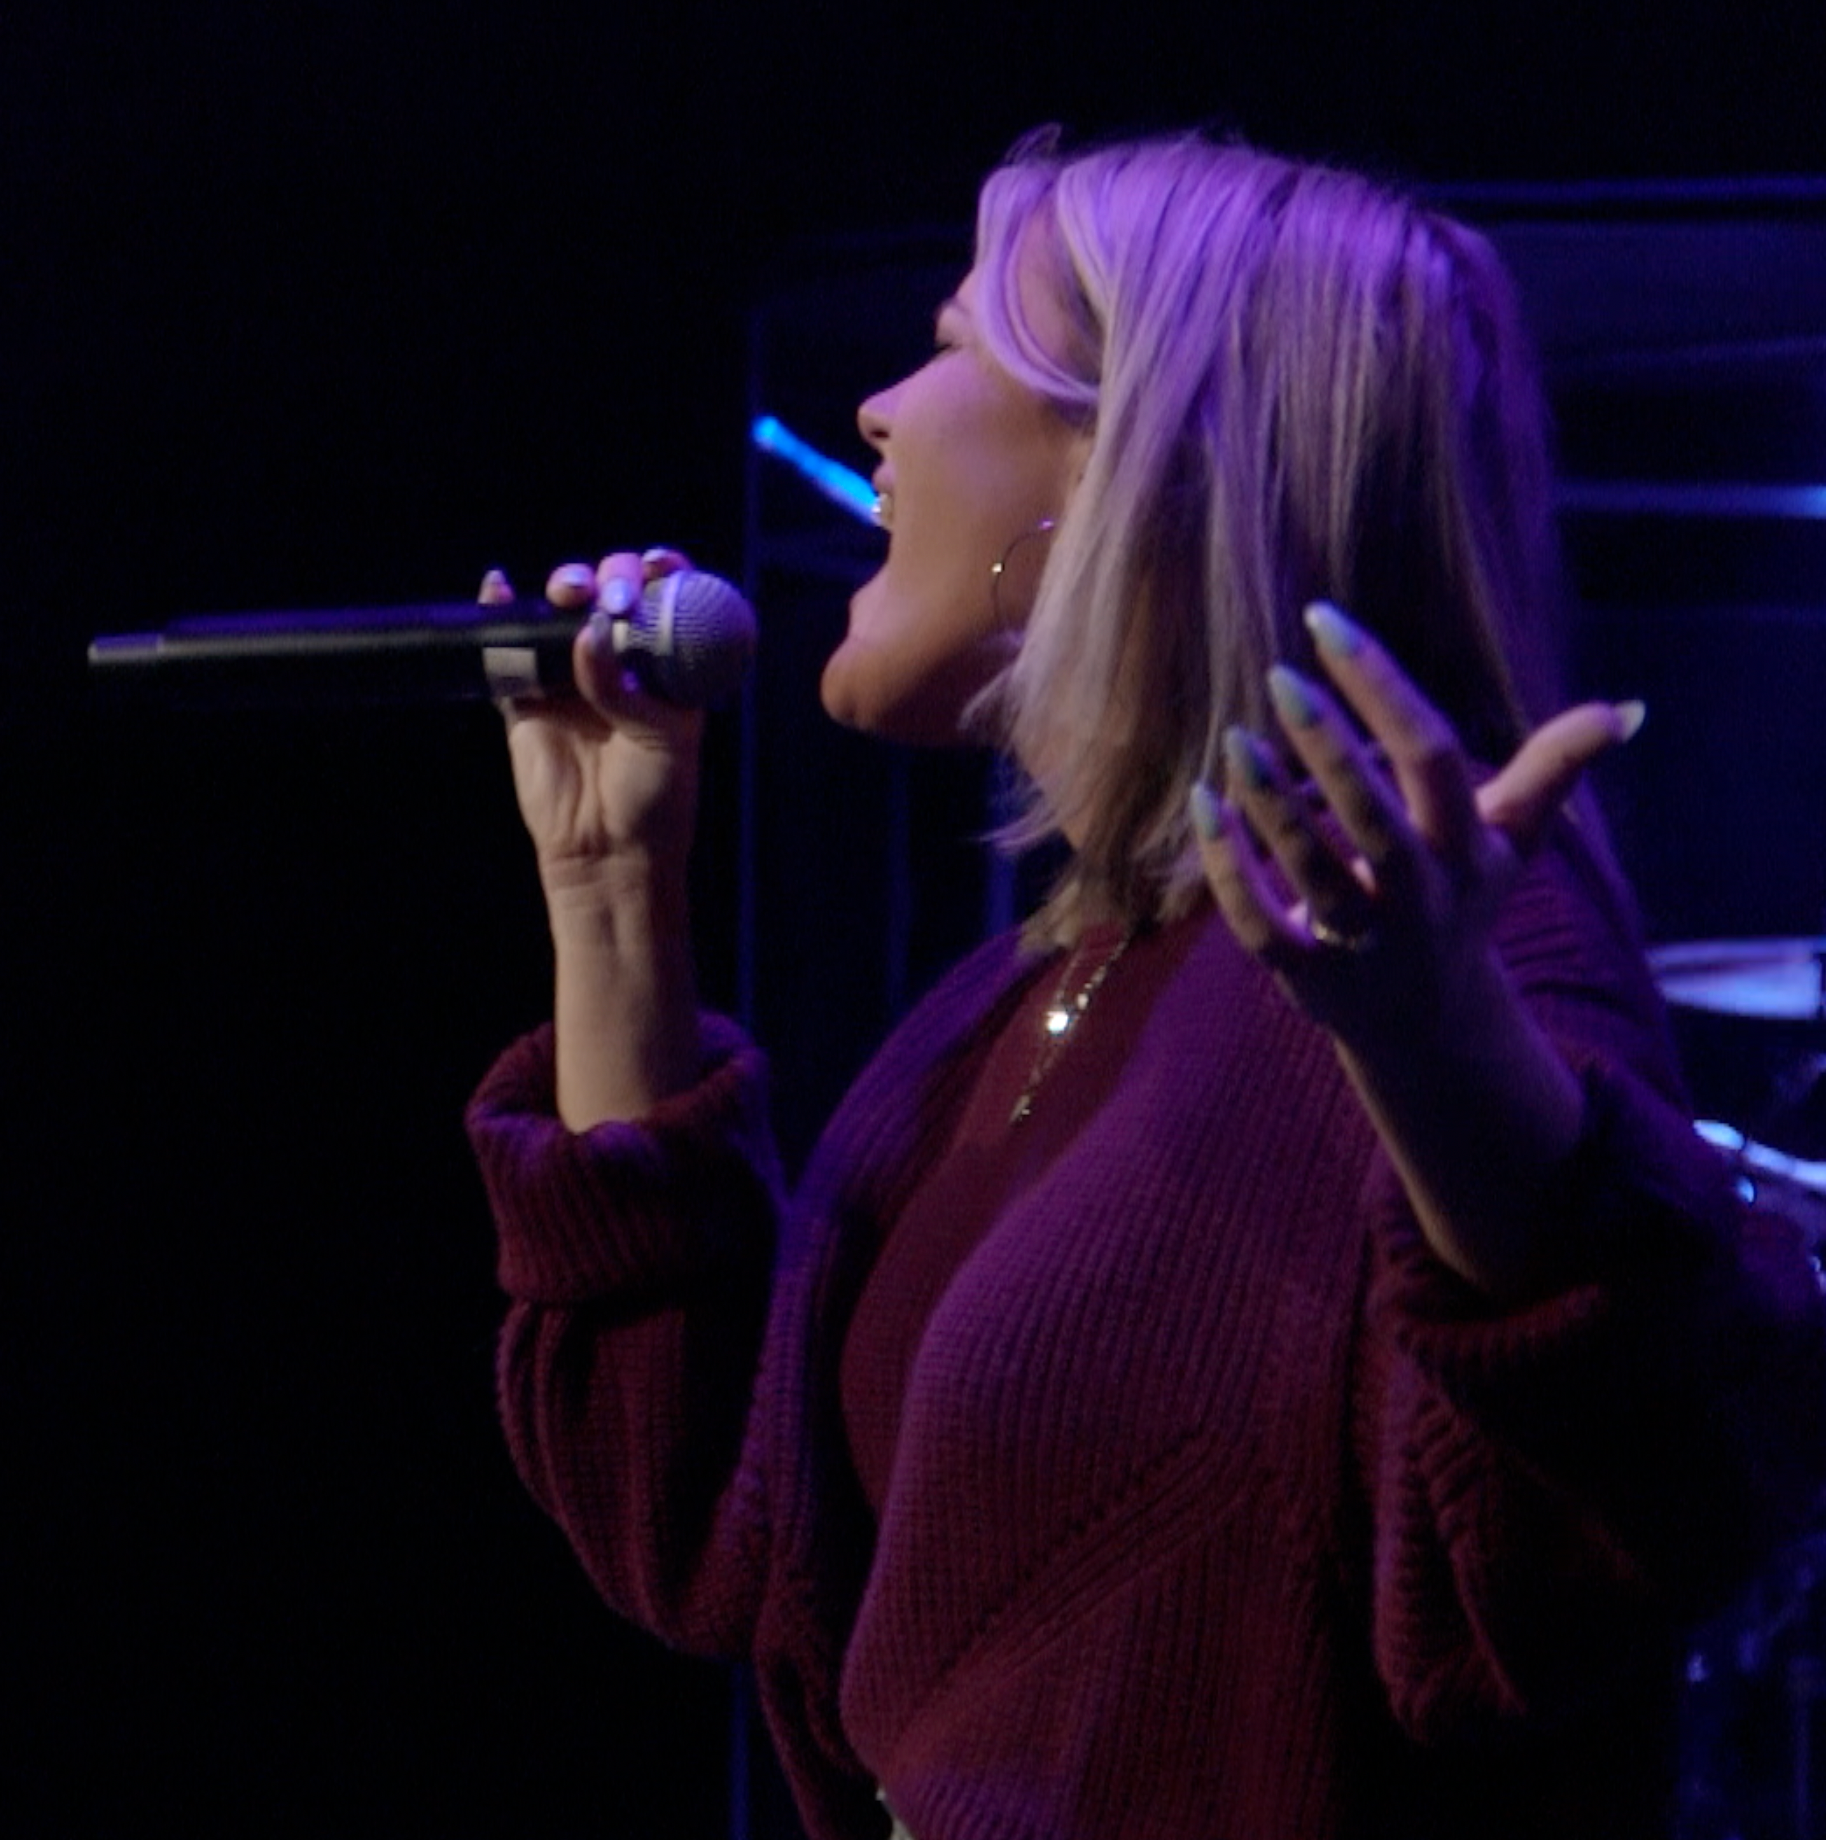 Woman singing with microphone in her hand.